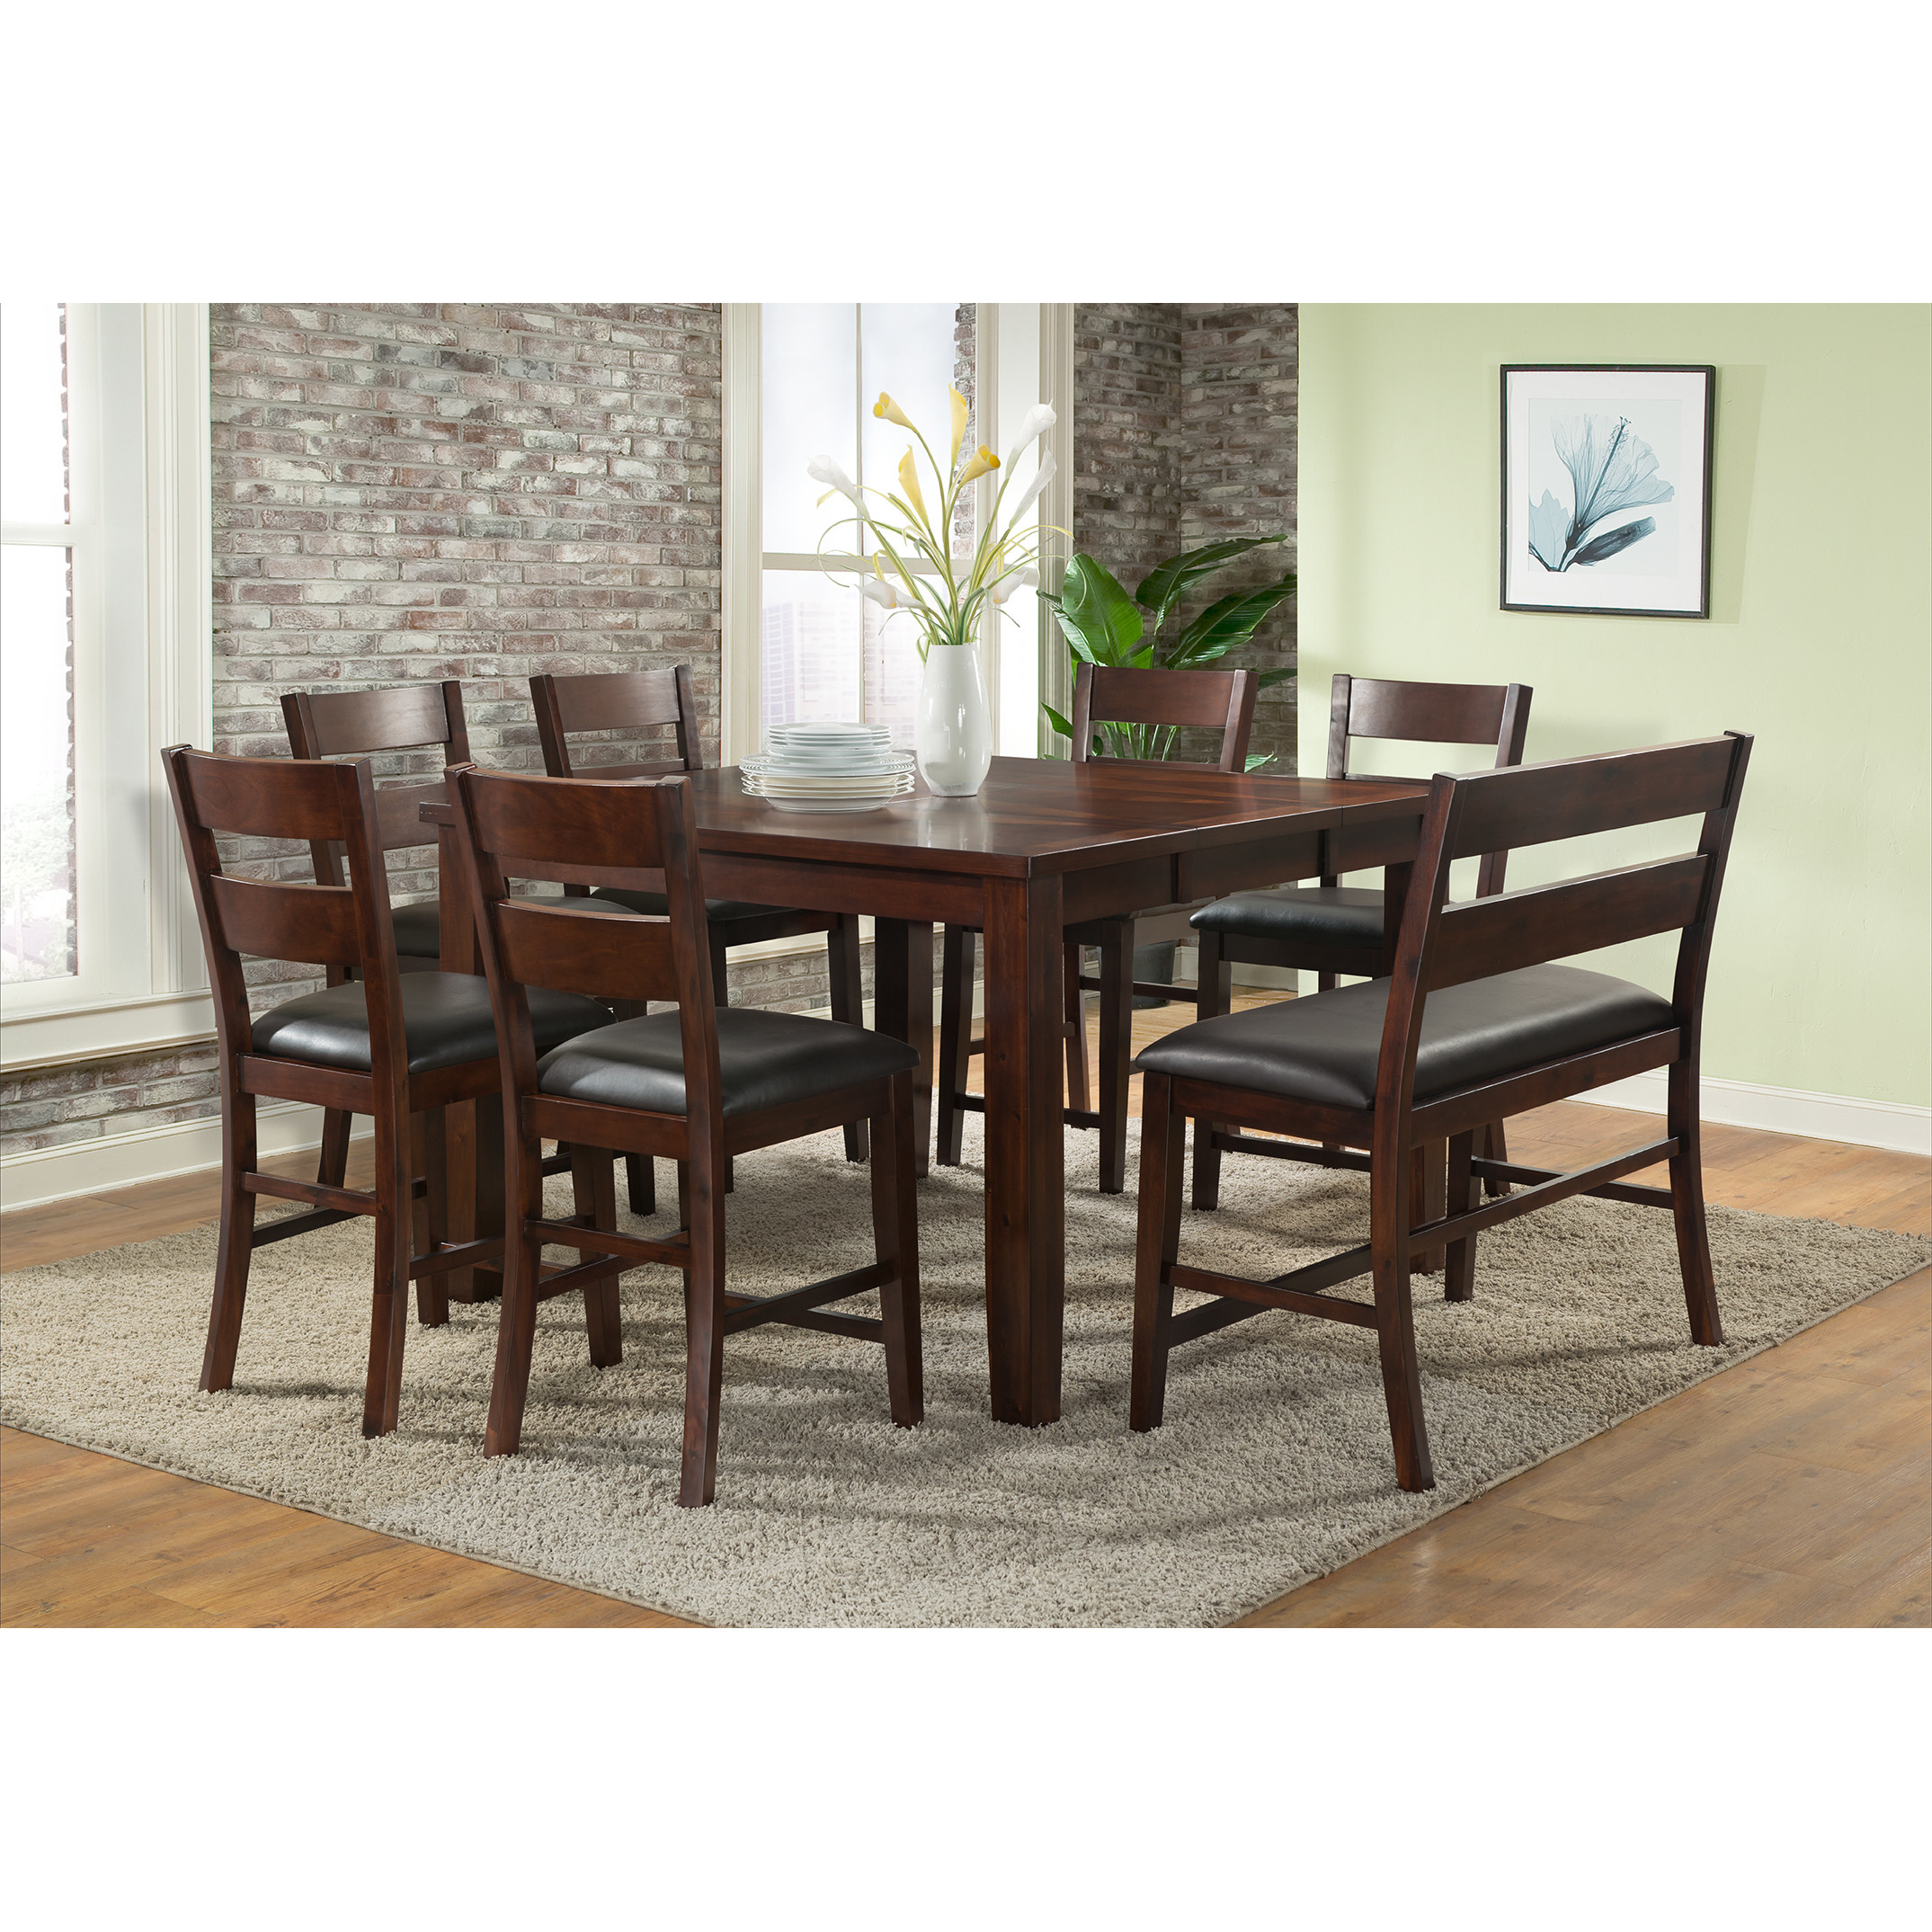 100 Extendable Dining Sets Loon Peak Manassa 5  : VH2500 from 45.76.66.238 size 2149 x 2149 jpeg 1012kB